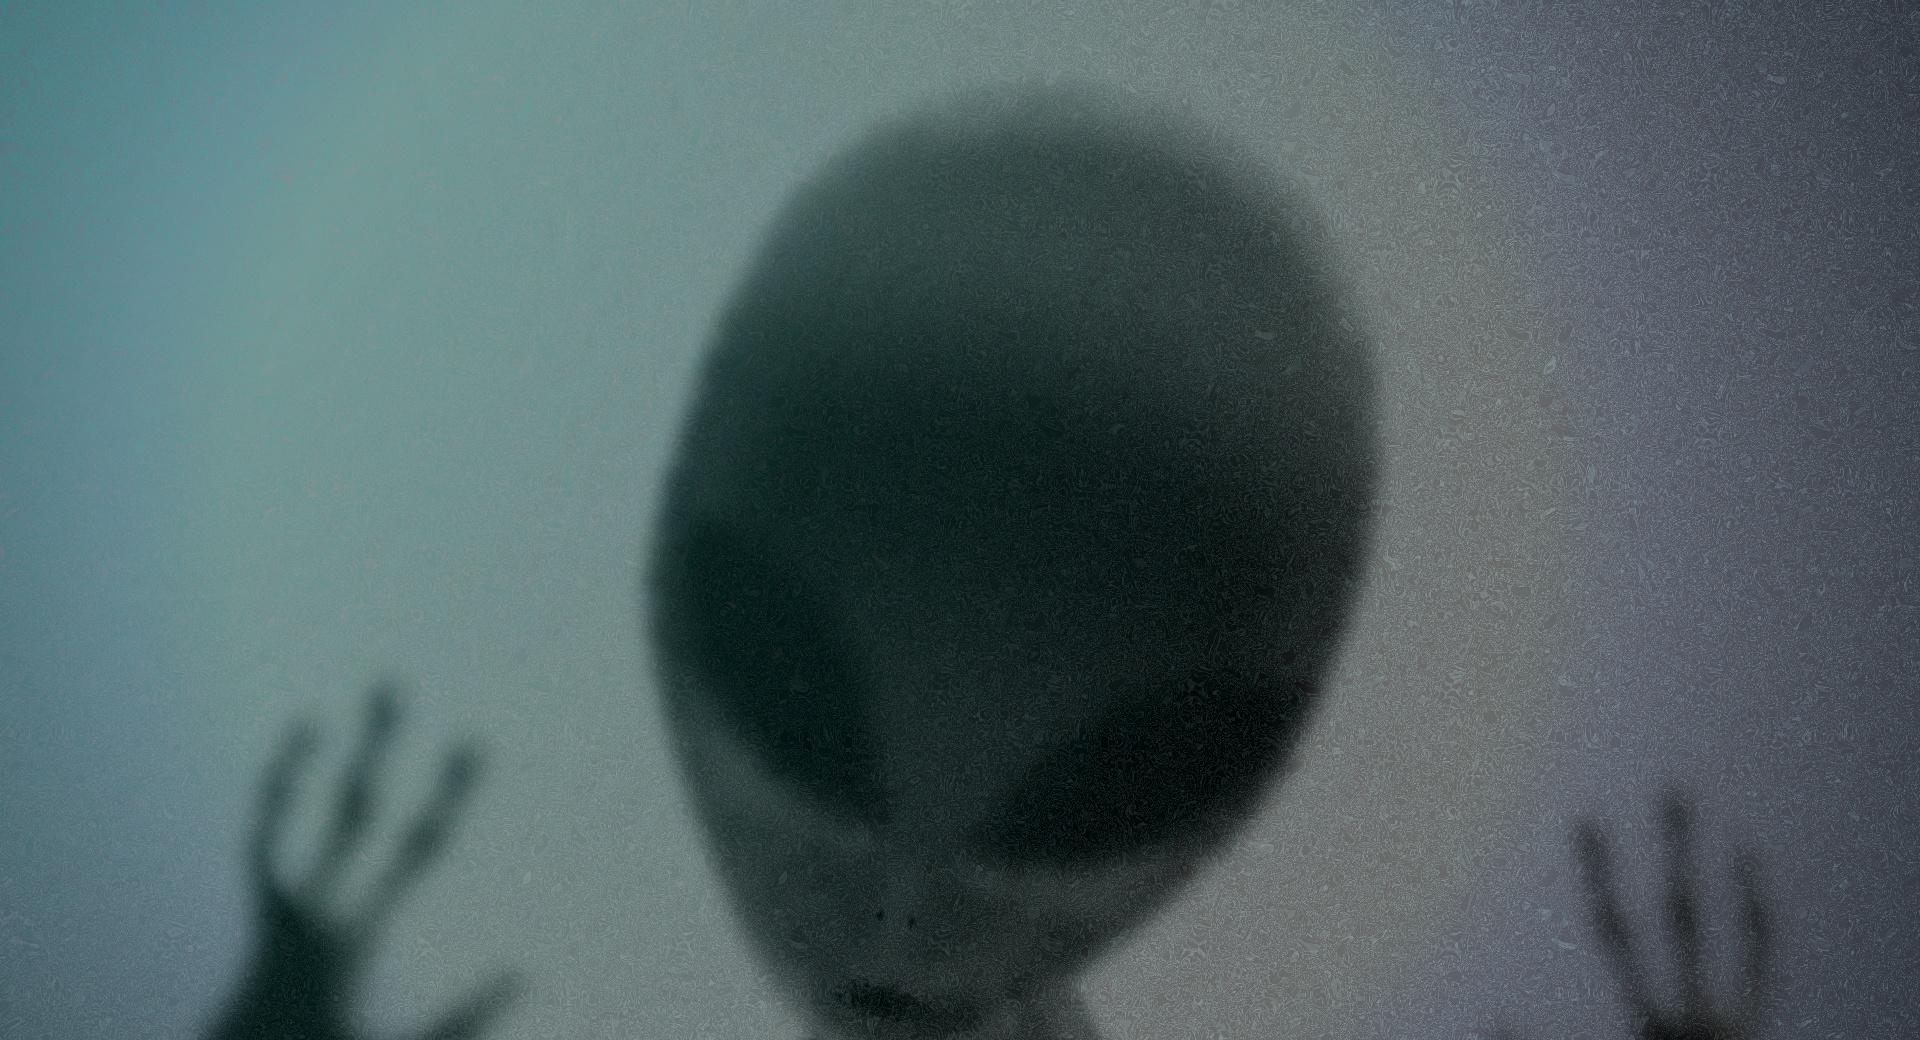 Alien Behind Glass wallpapers HD quality